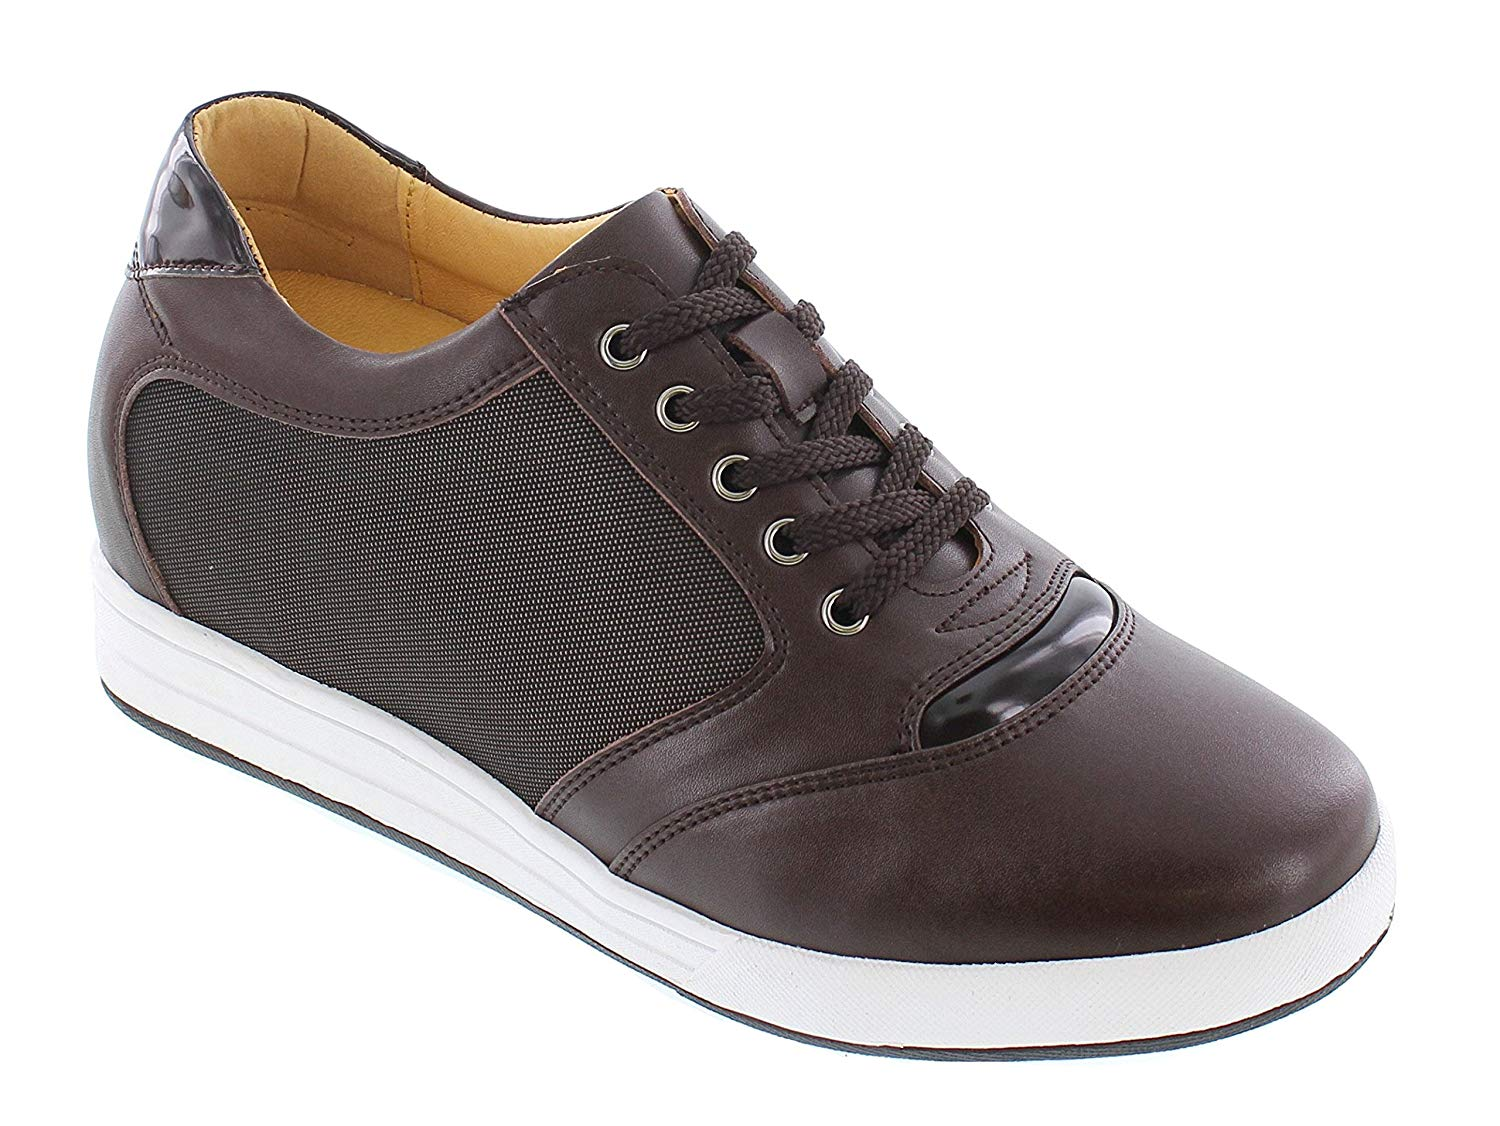 Toto TOTO-A53271-3.2 Inches Taller-Height Increasing Elevator Shoes (Brown Leather Lace up Campus Shoes)